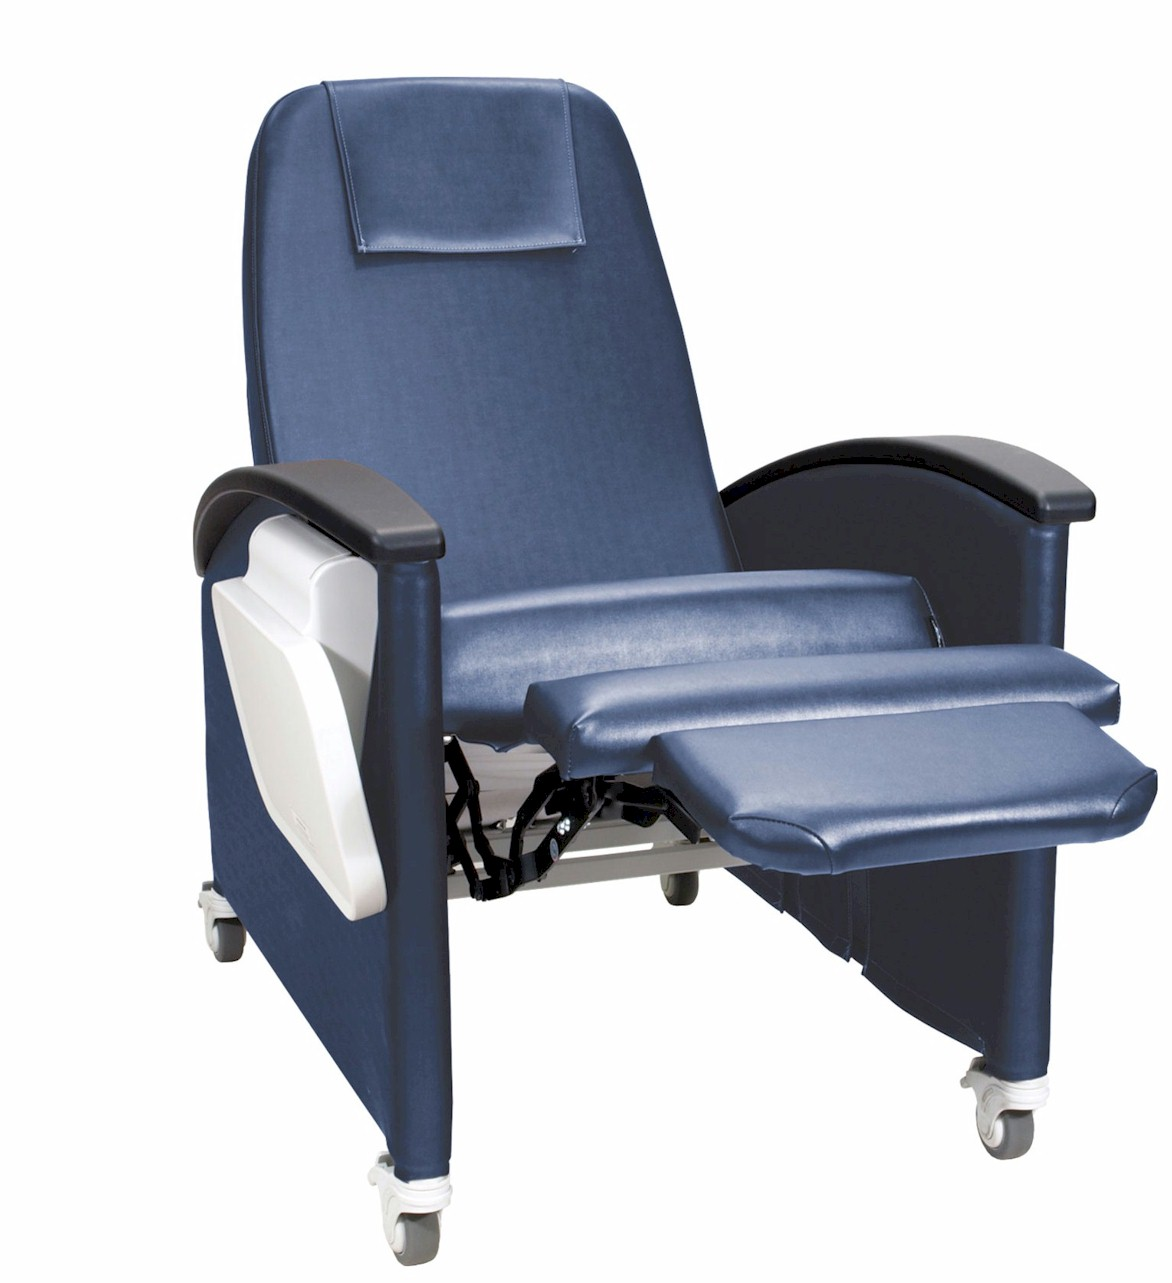 Image of: Best Medical Recliner Chairs